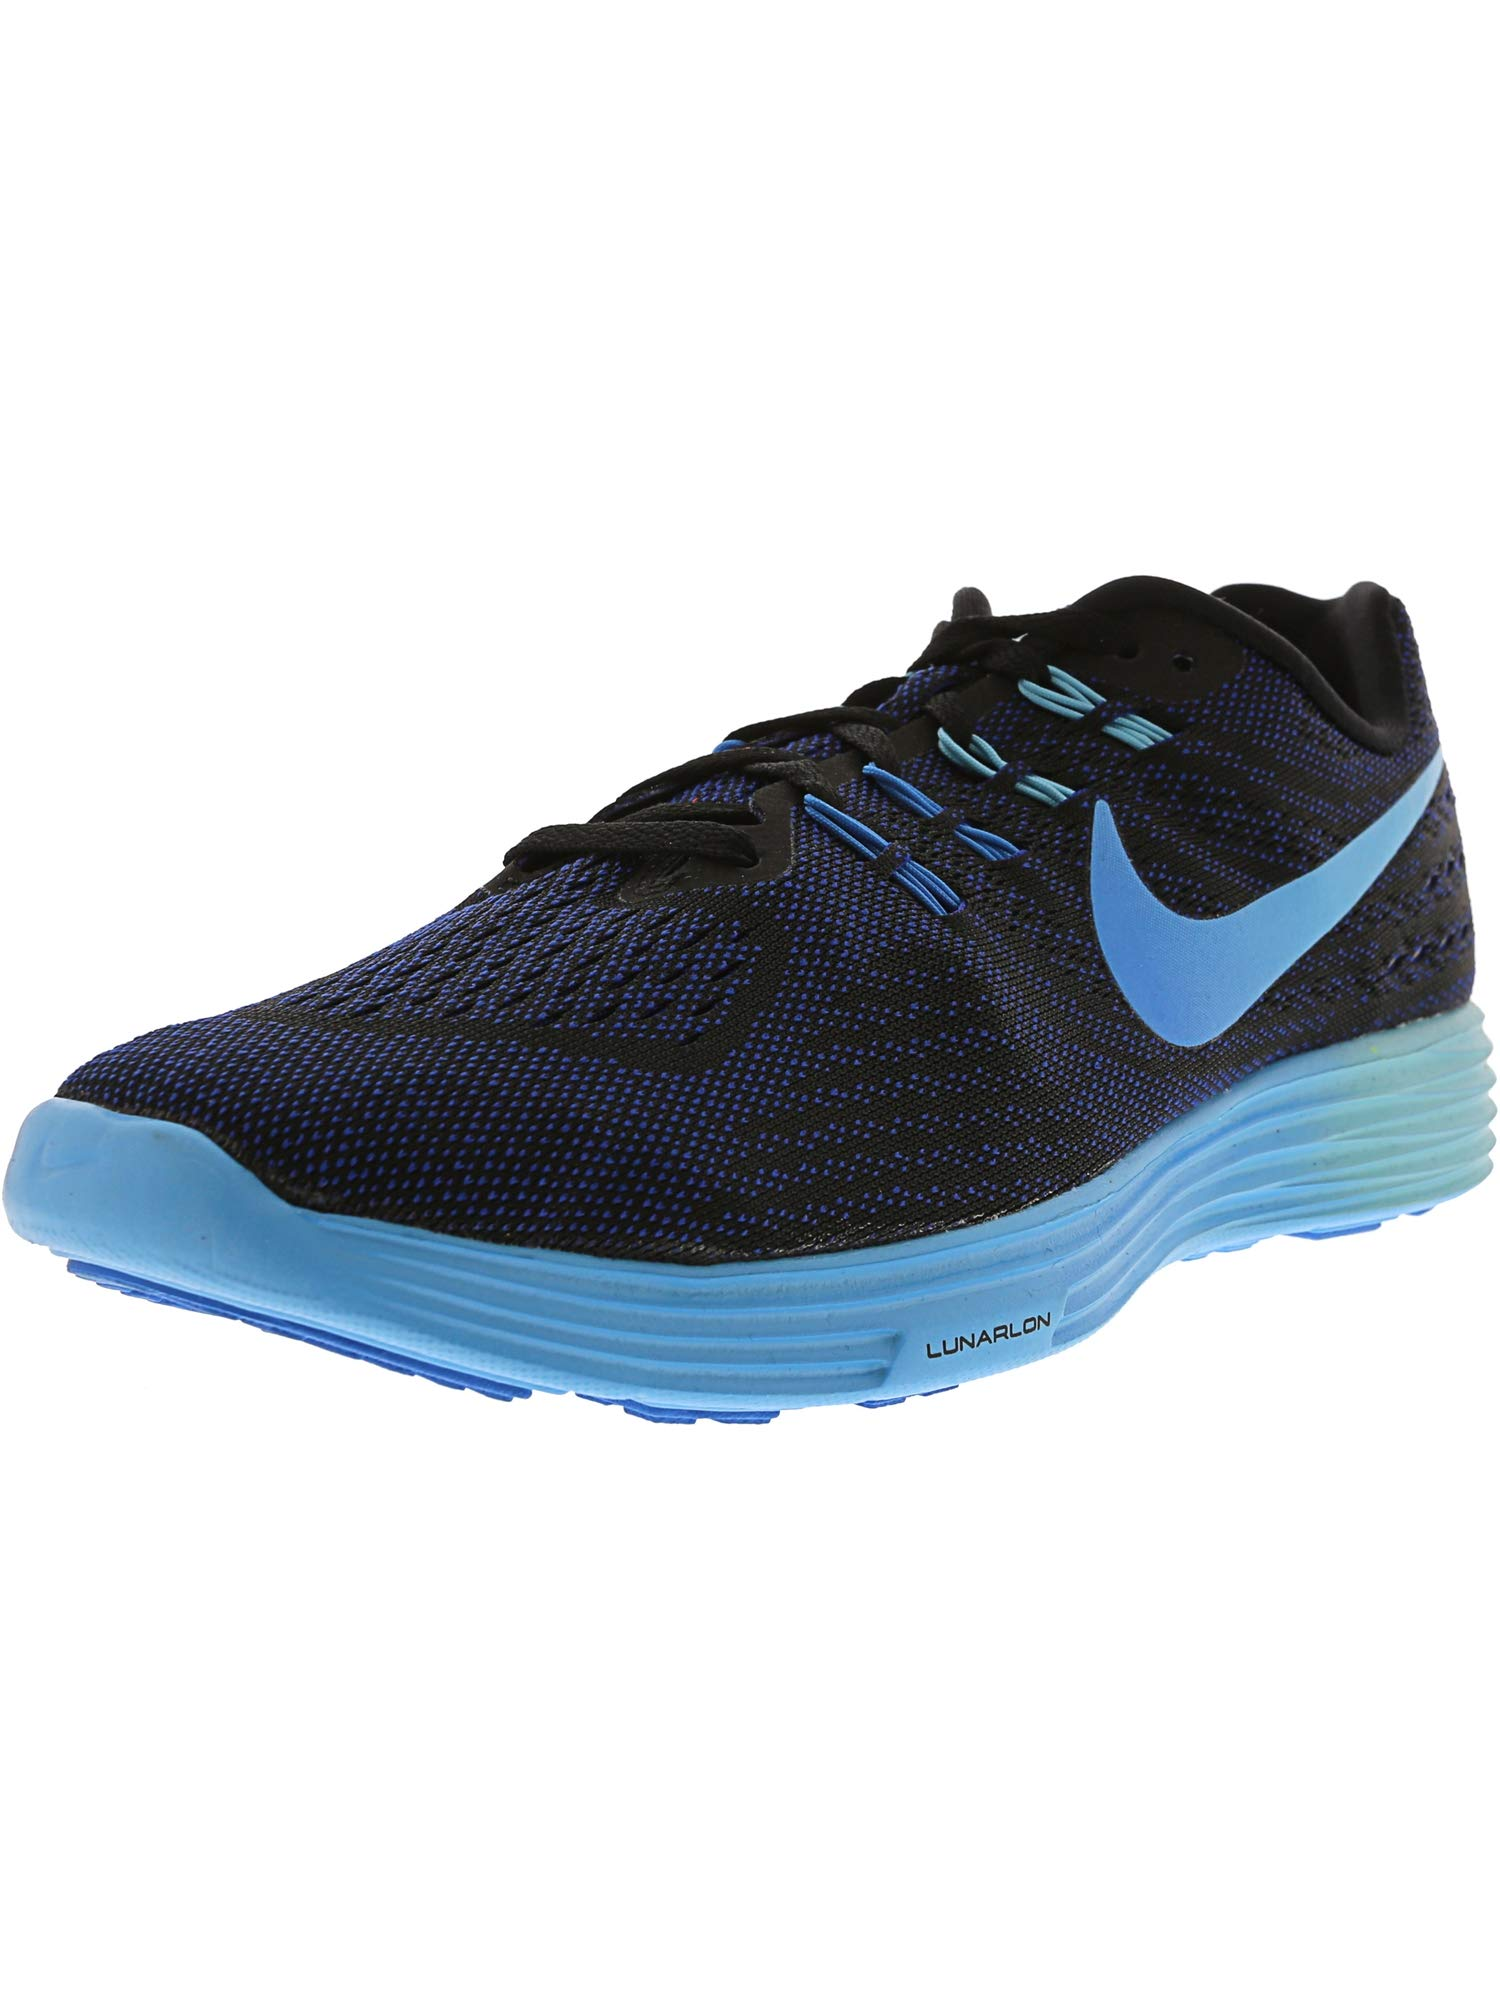 ca8f3936141a4 Galleon - Nike Women s Lunartempo 2 Black Blue Glow Deep Royal - Ankle-High Running  Shoe 12M